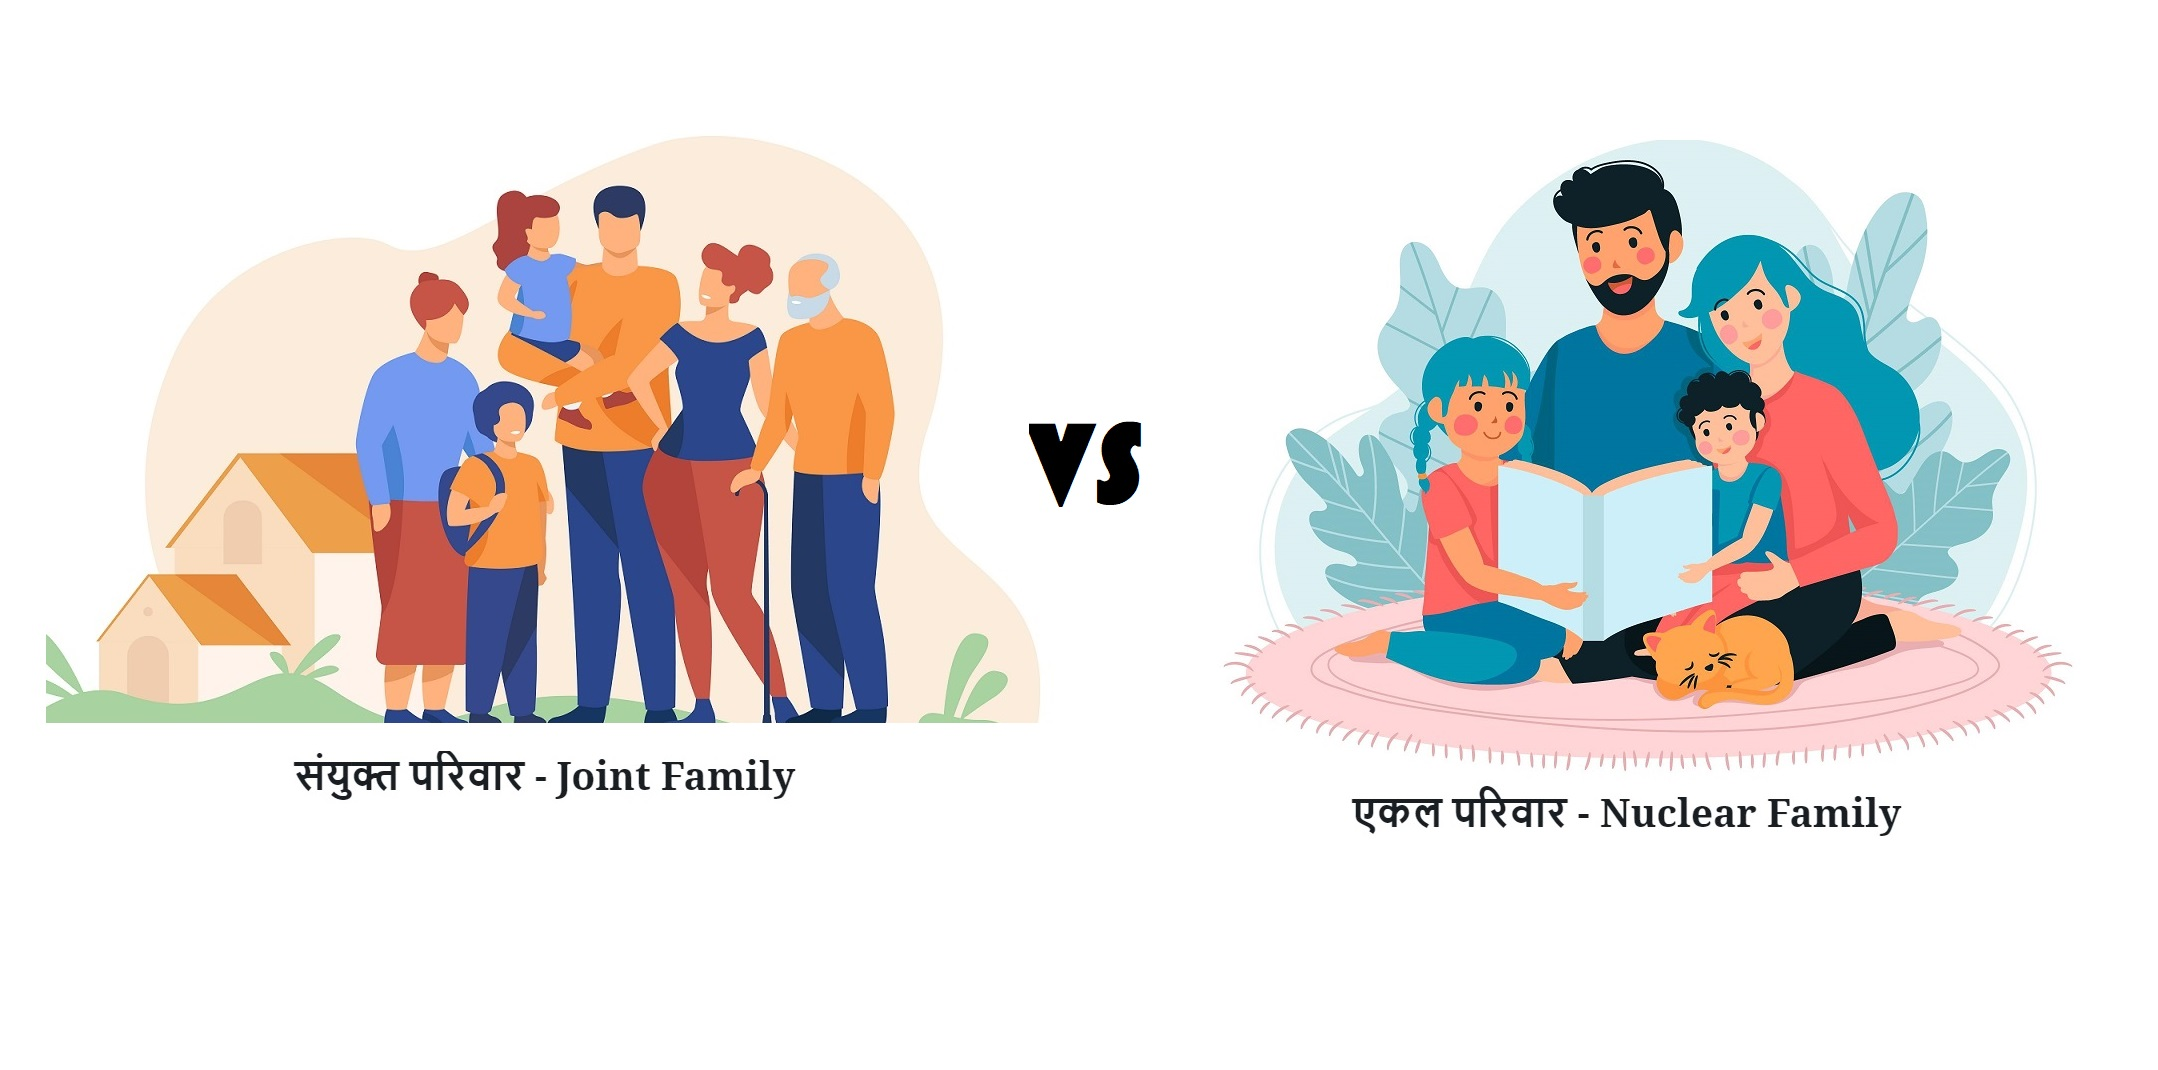 Joint family vs nuclear family